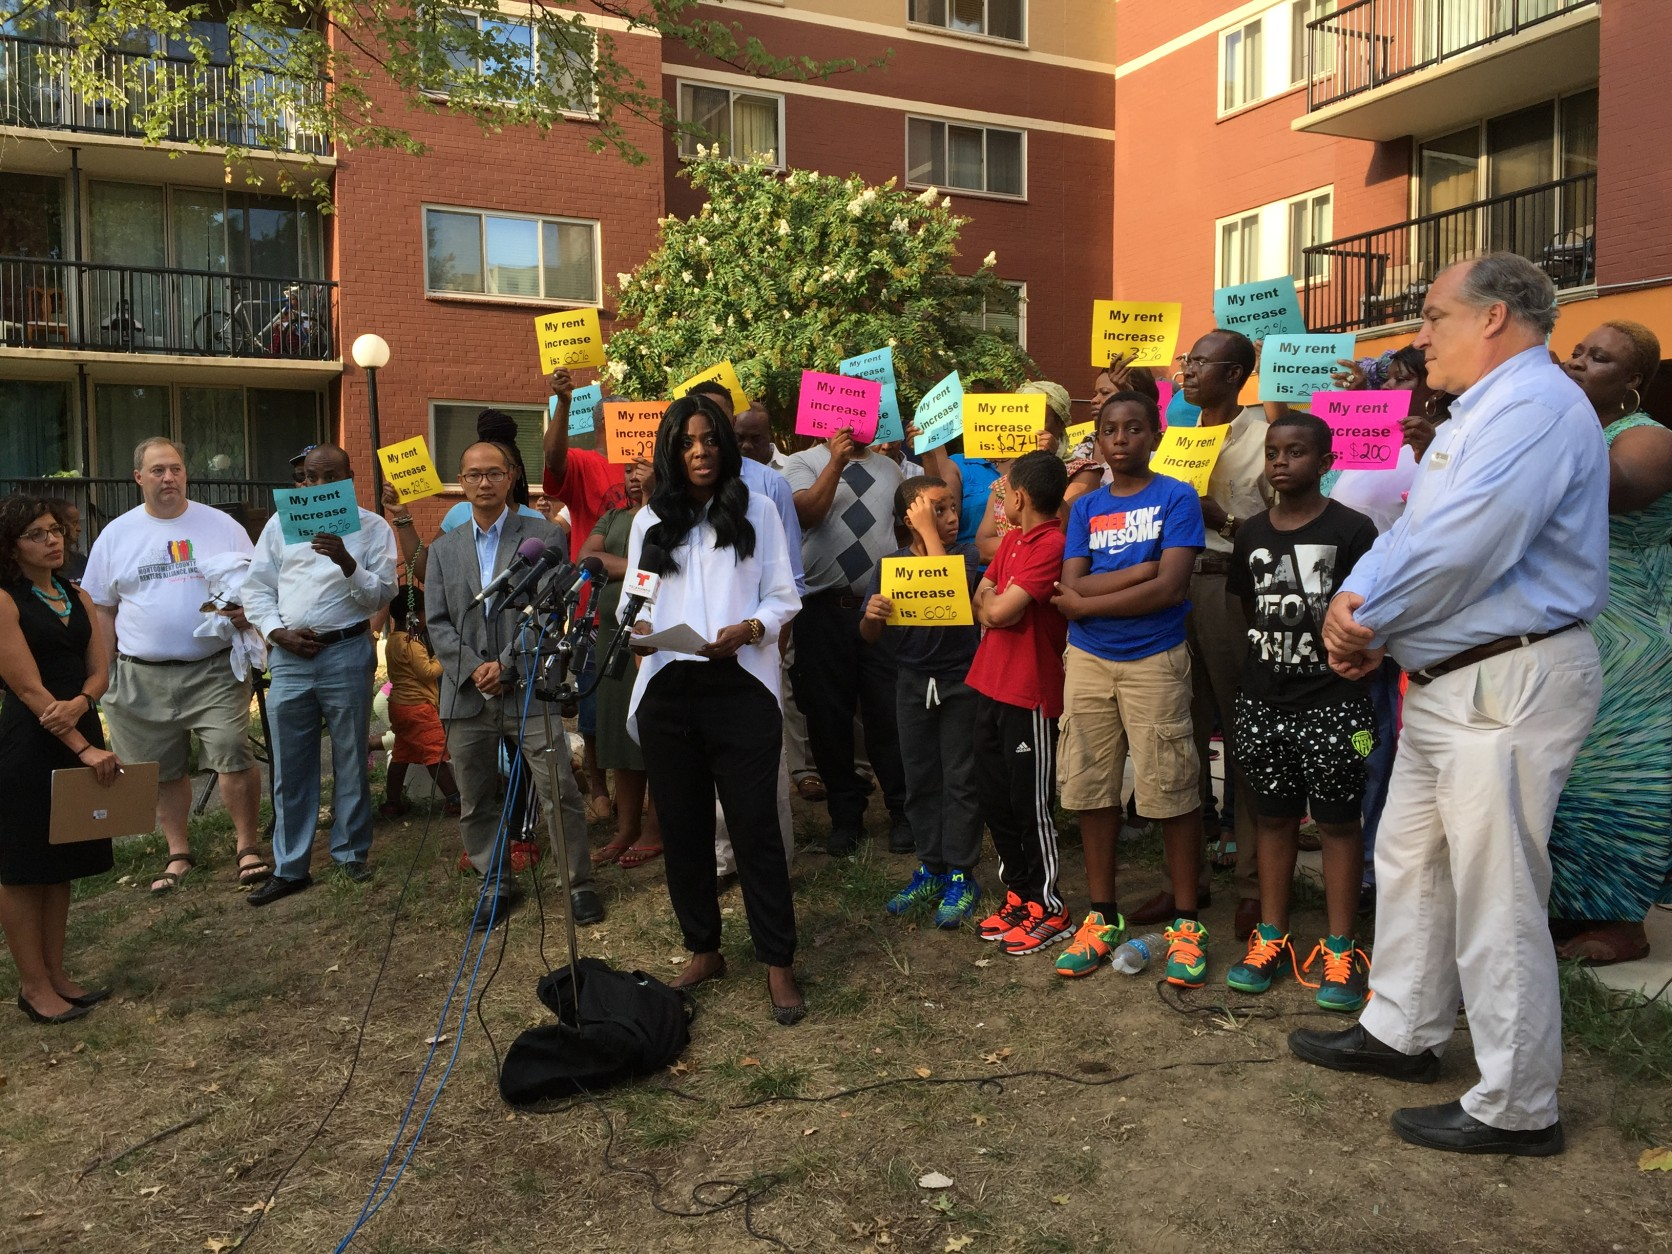 Residents hold signs as Acting President of the Hampshire Tower Tenant Association Margaret Buraimoh speaks. (WTOP/Michelle Basch)